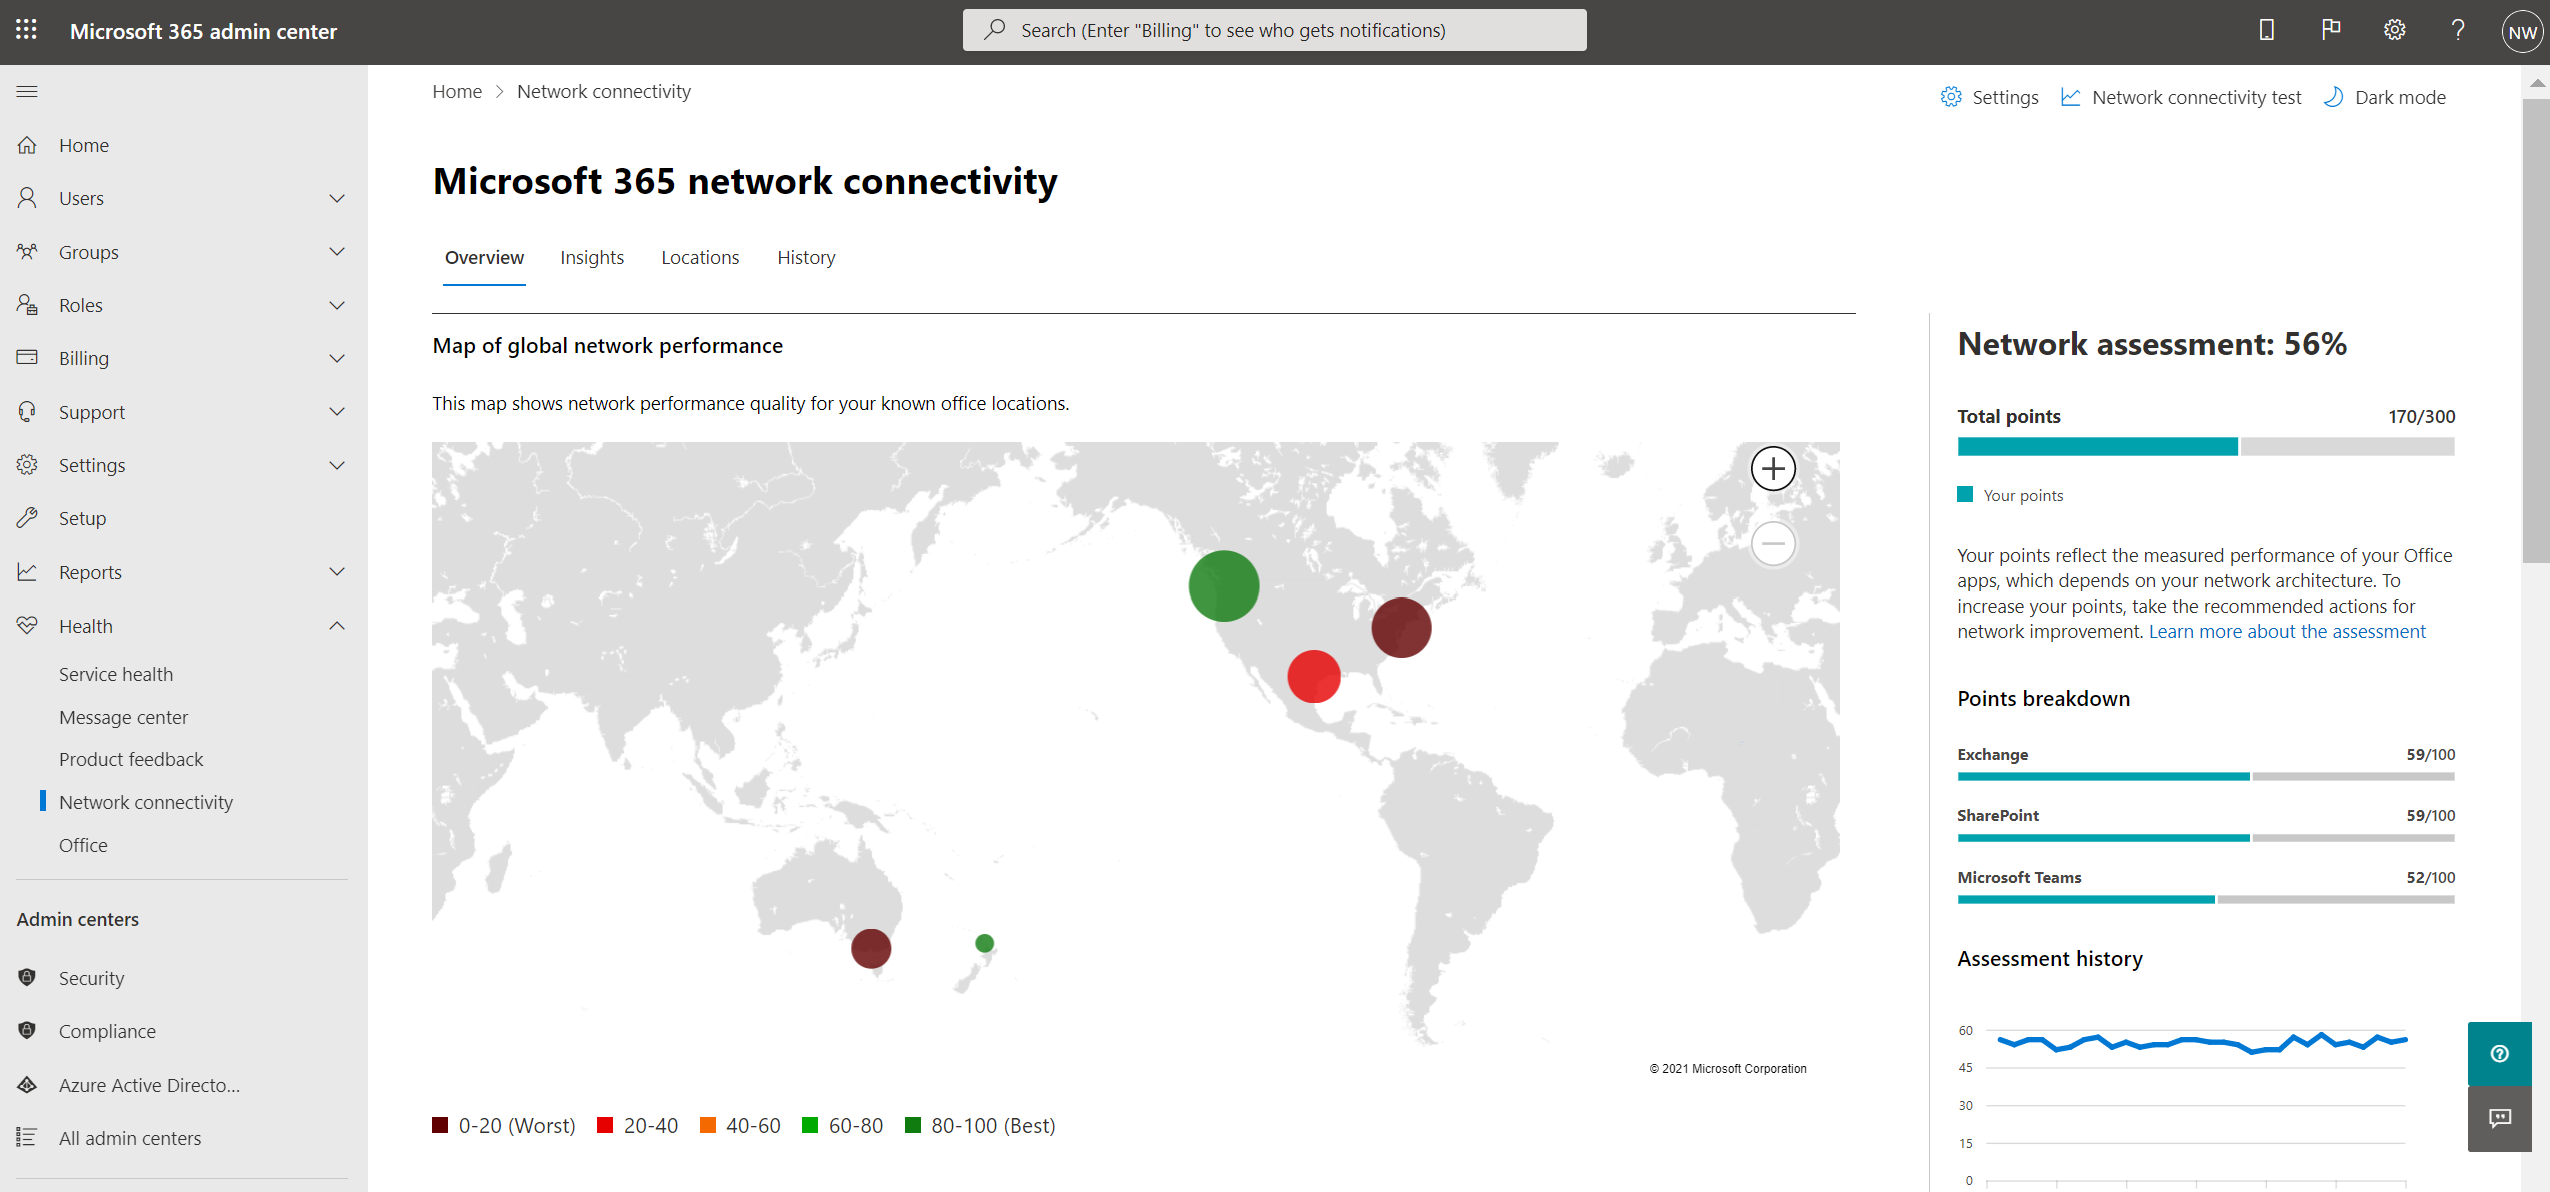 Network connectivity test tool